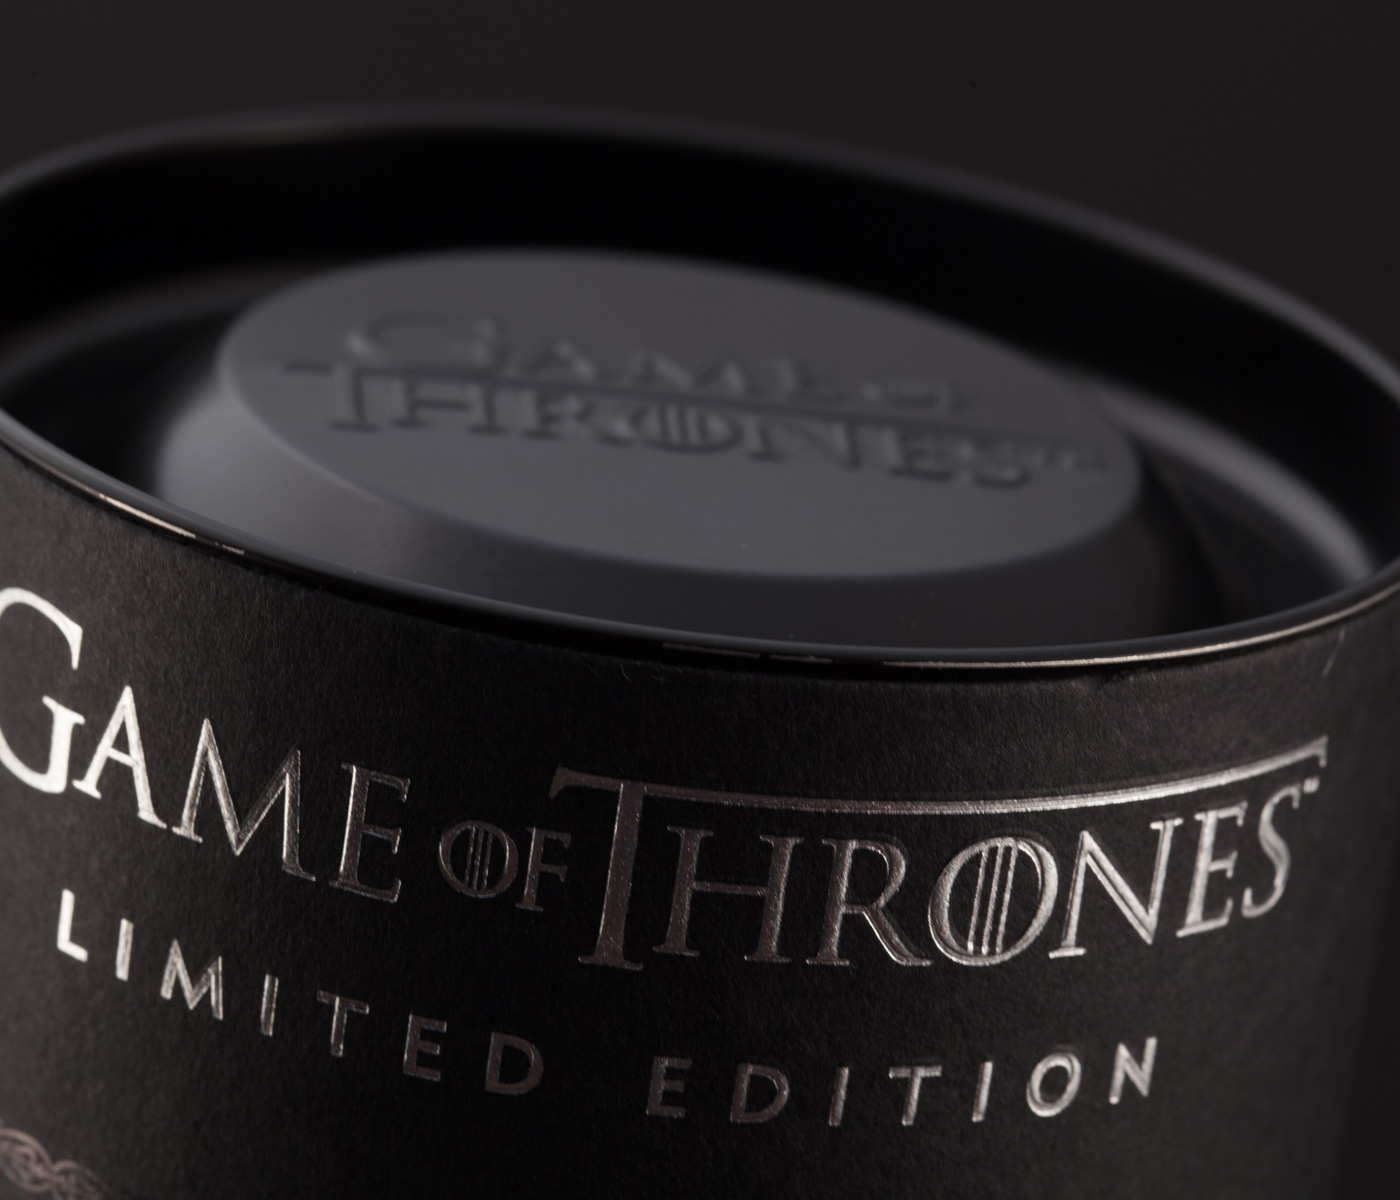 Game of thrones limited edition whiskey